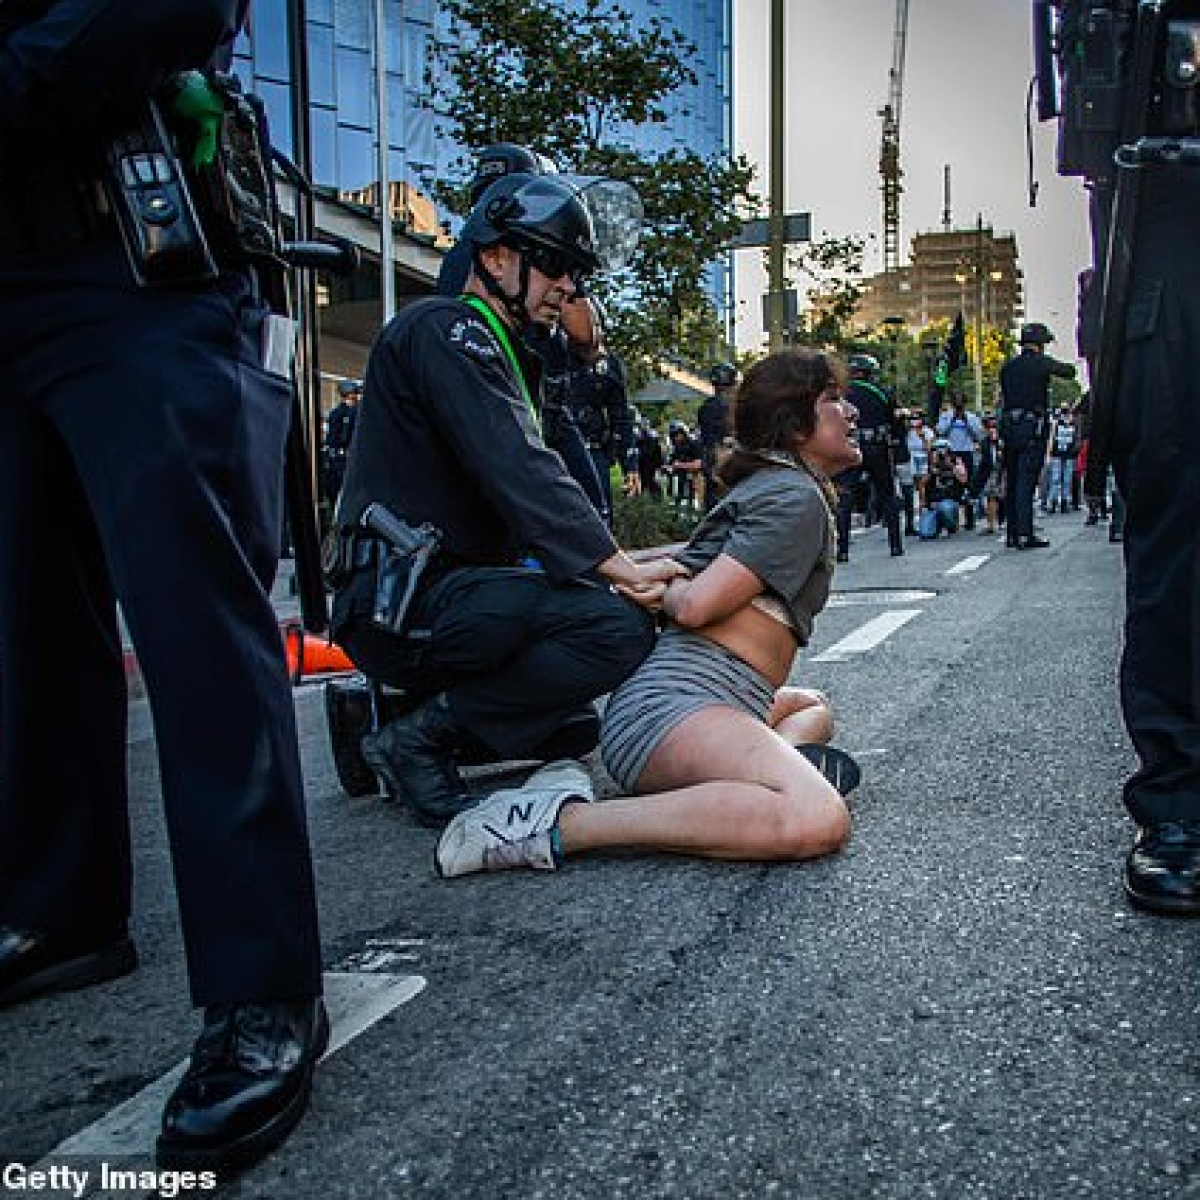 Protests spread across US